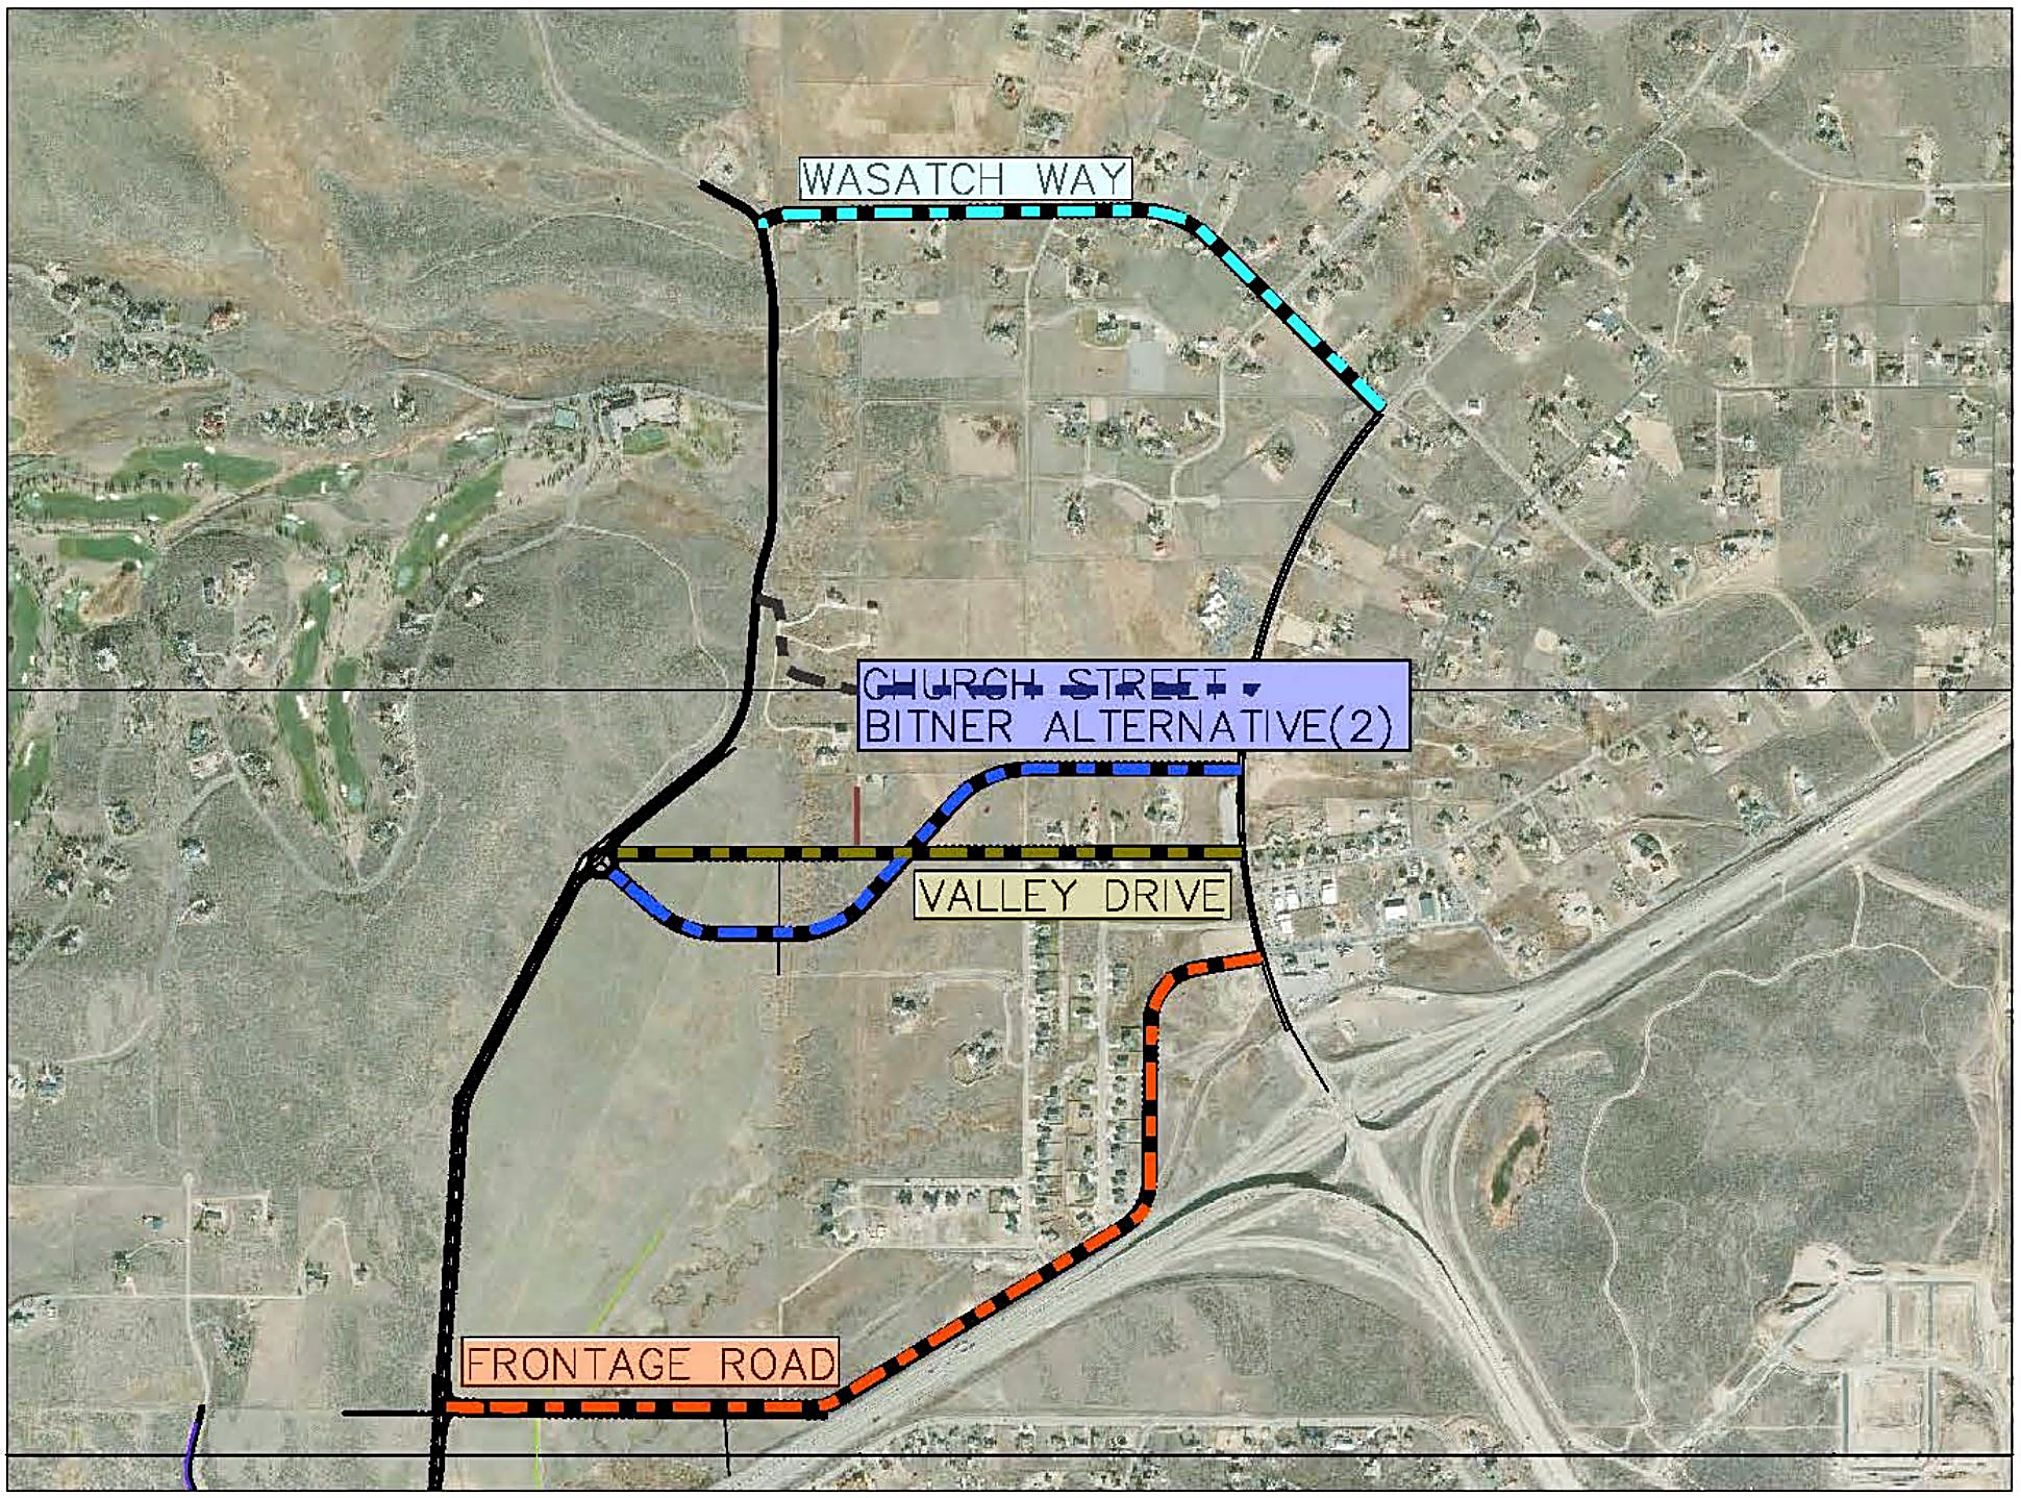 Summit County Council to weigh Silver Creek/Bitner connection